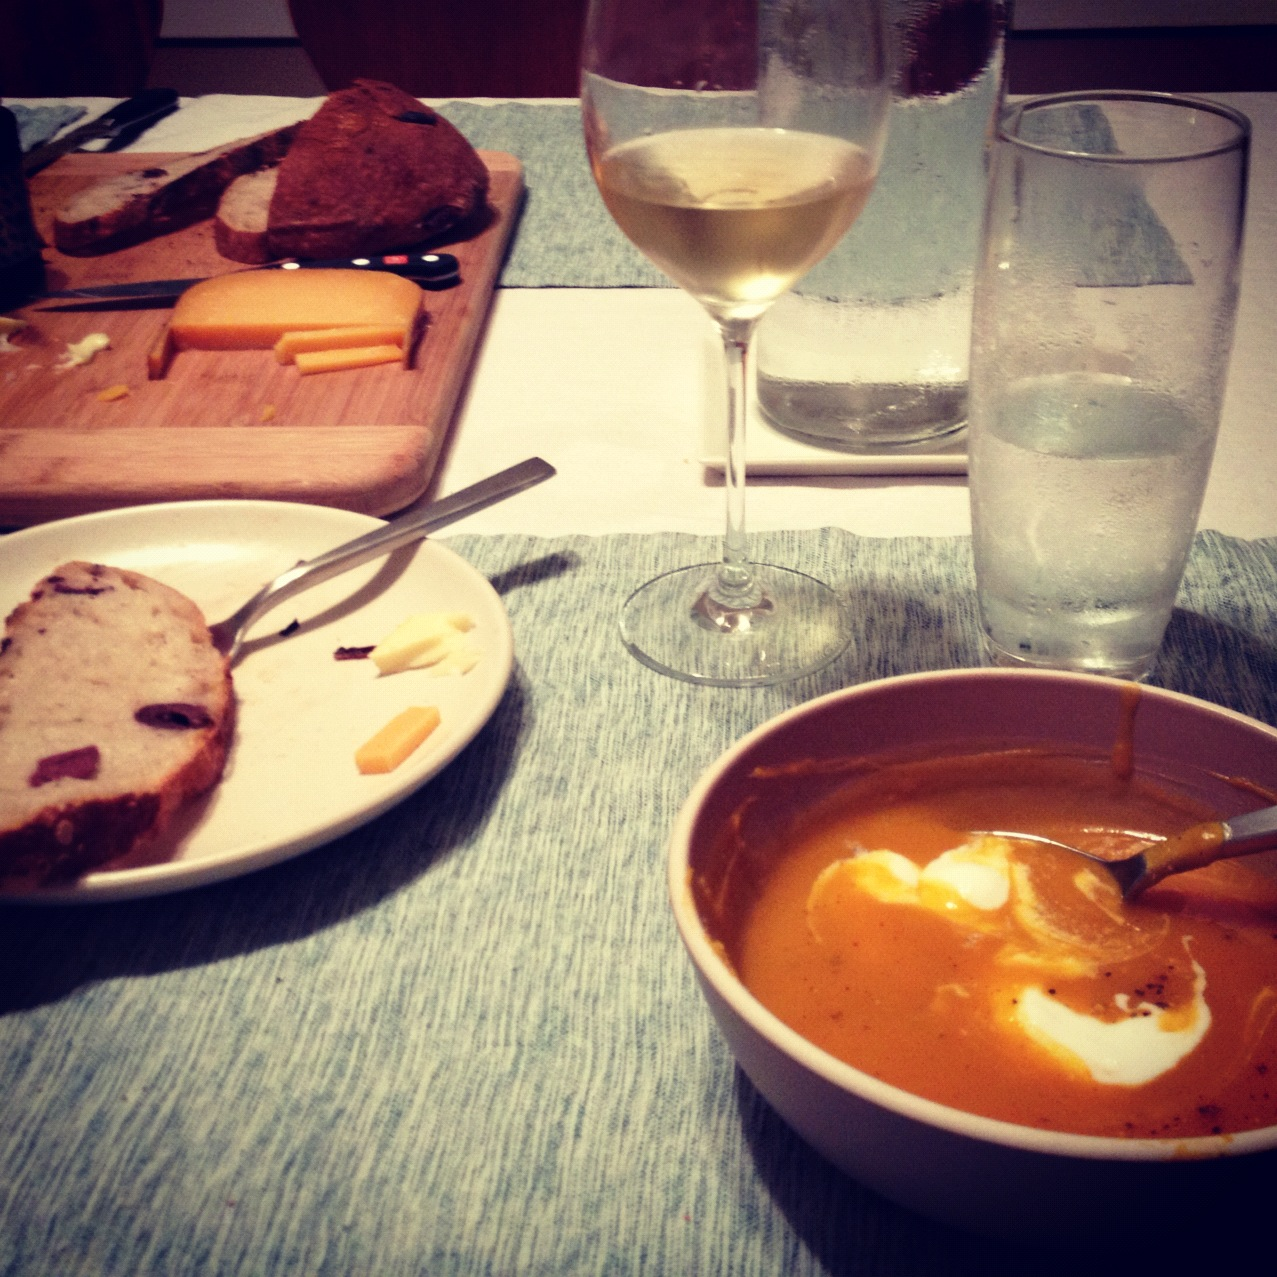 Squash Soup via Instagram